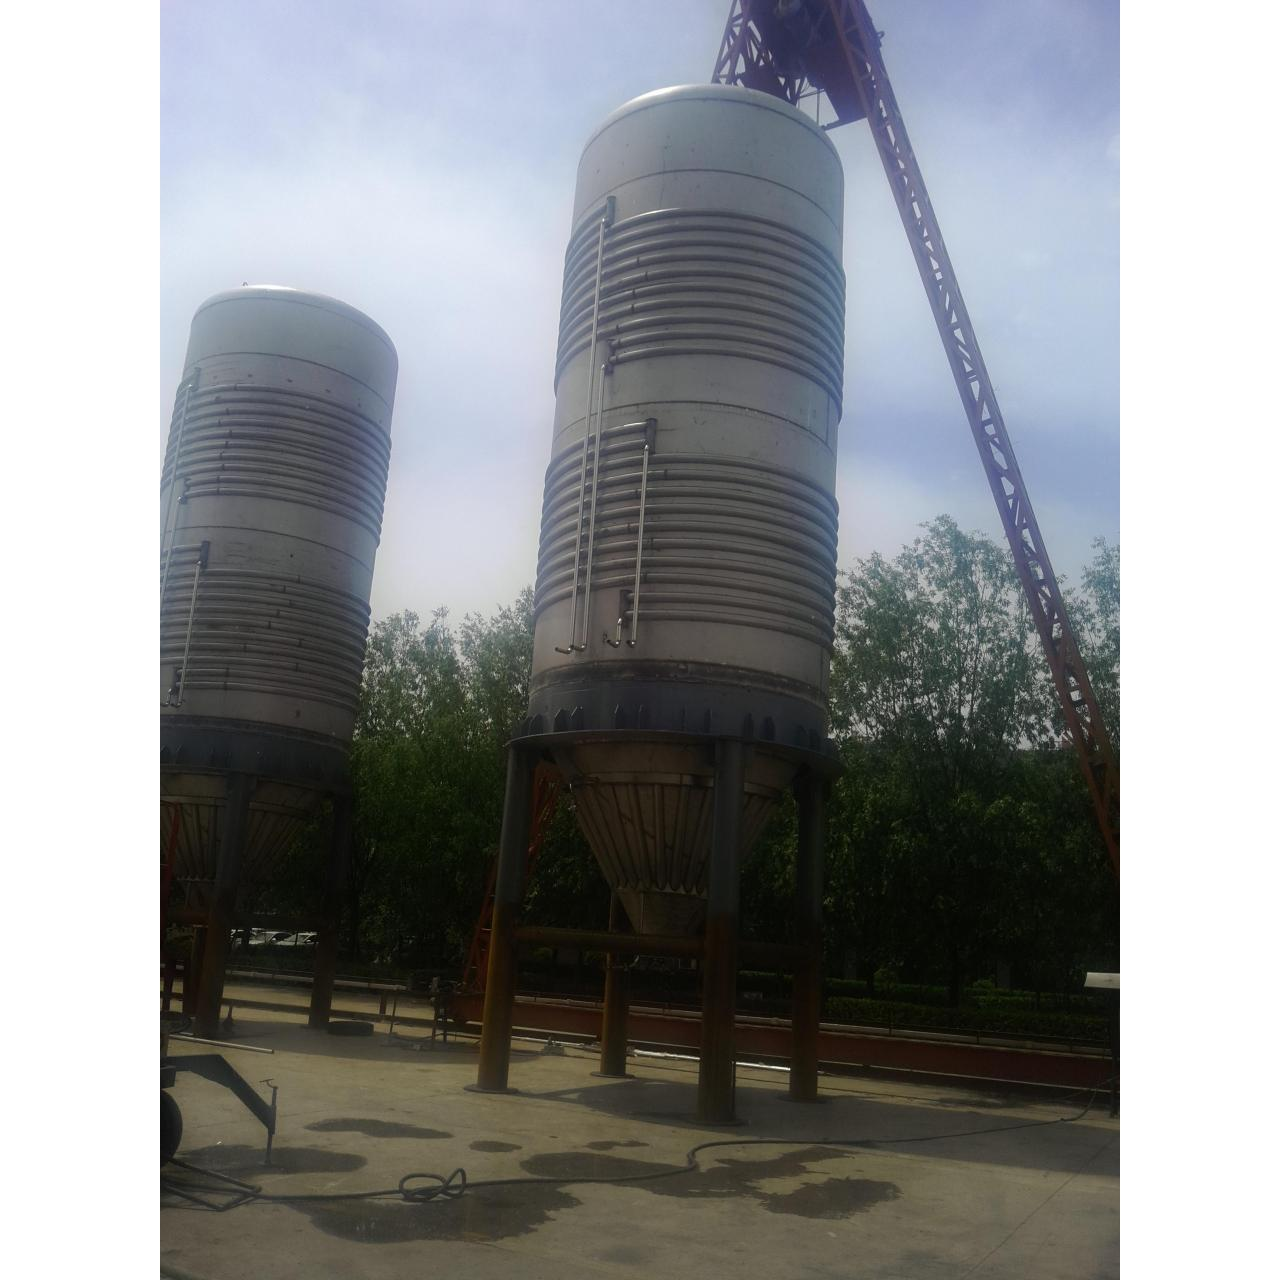 150 tons of fermentation tank field construction projects